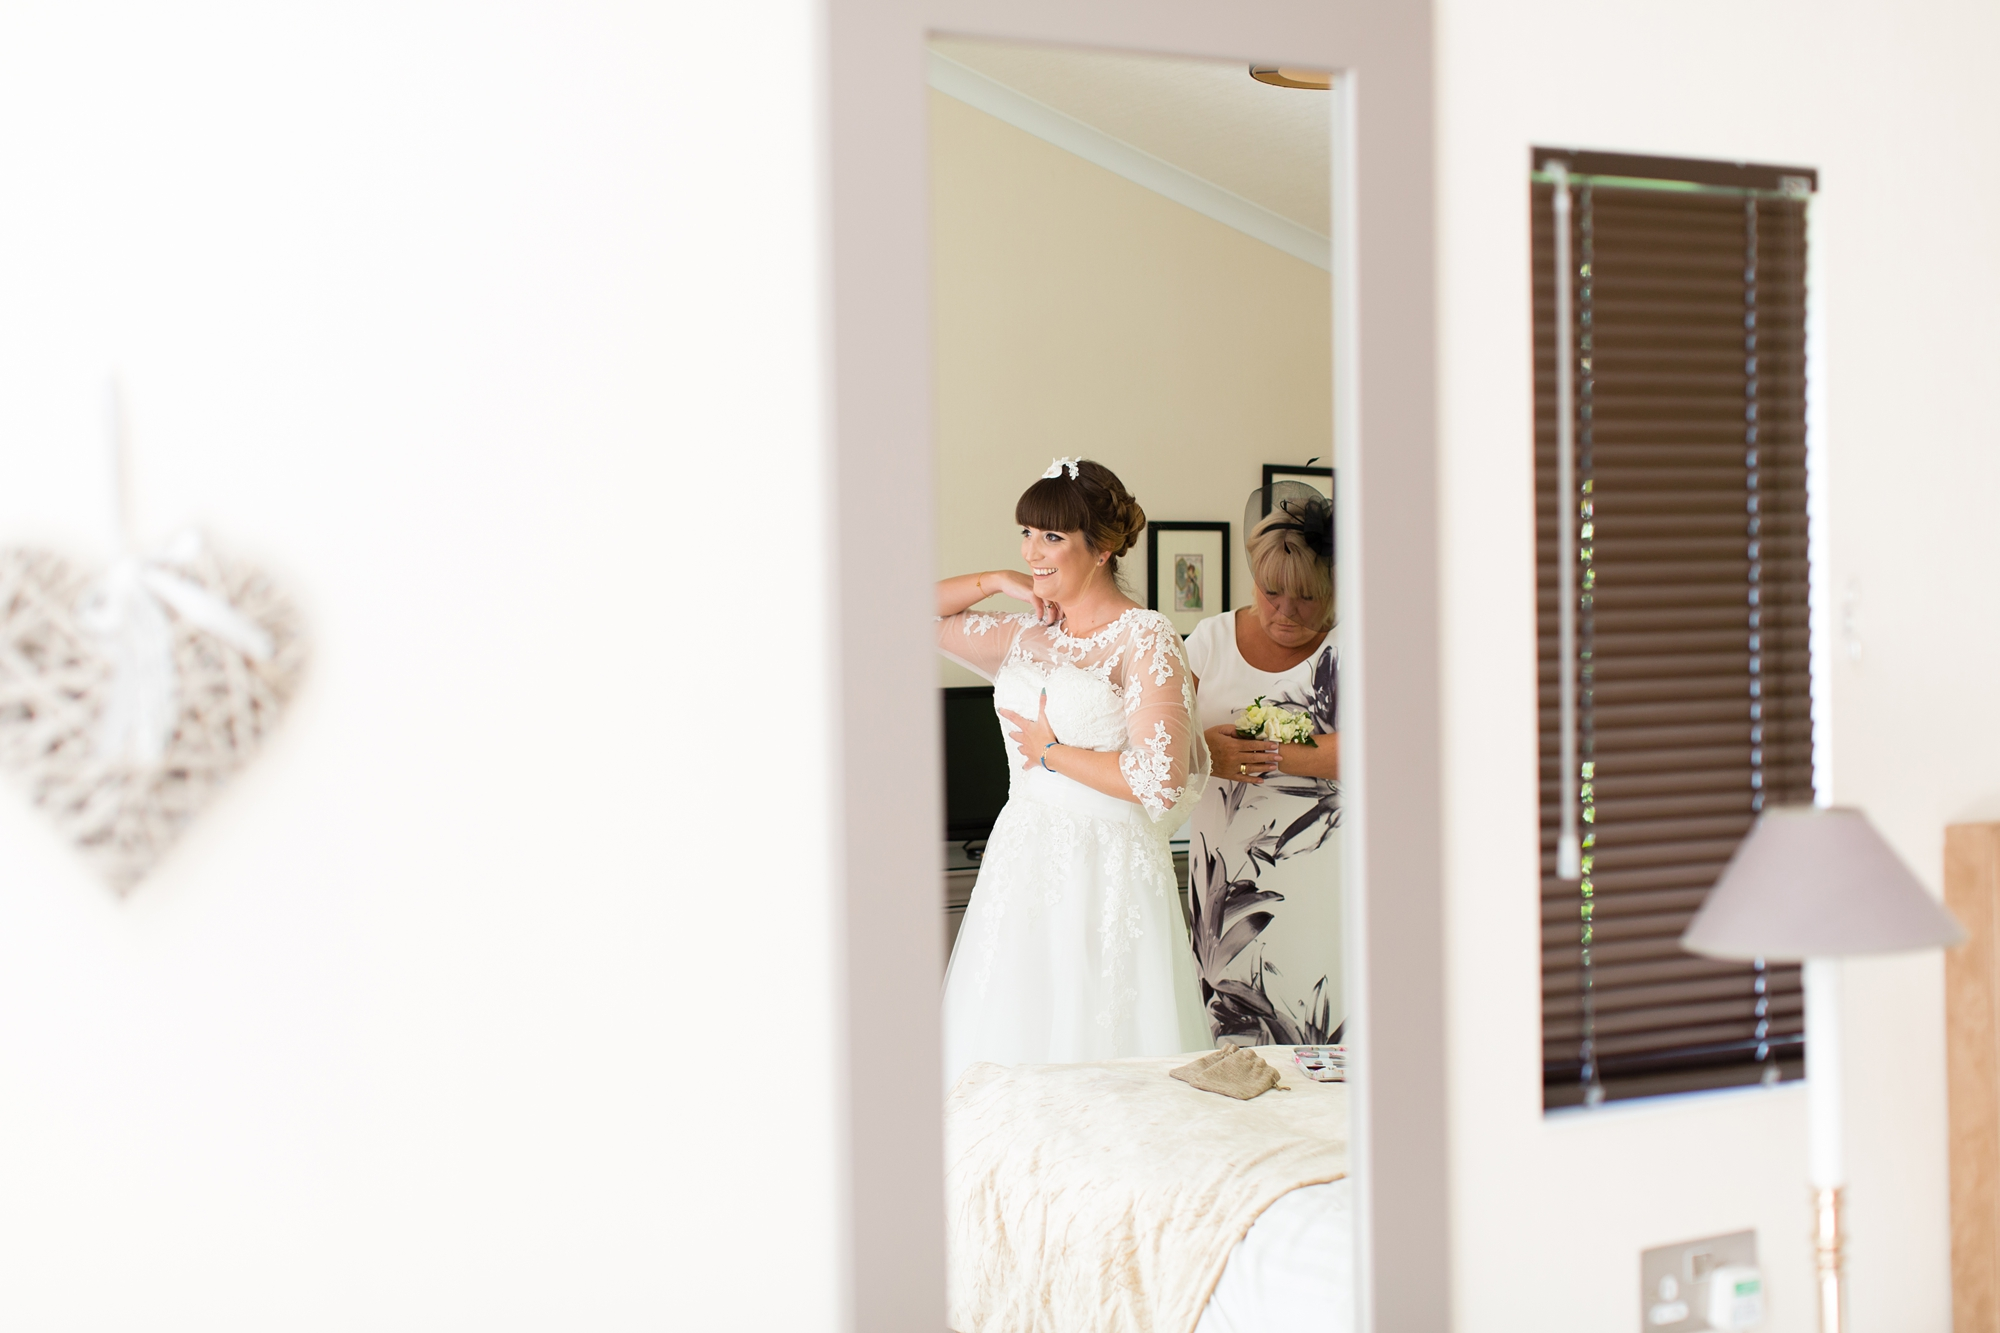 York Wedding Photography at Barmbyfield Barns bride getting into dress in mirror